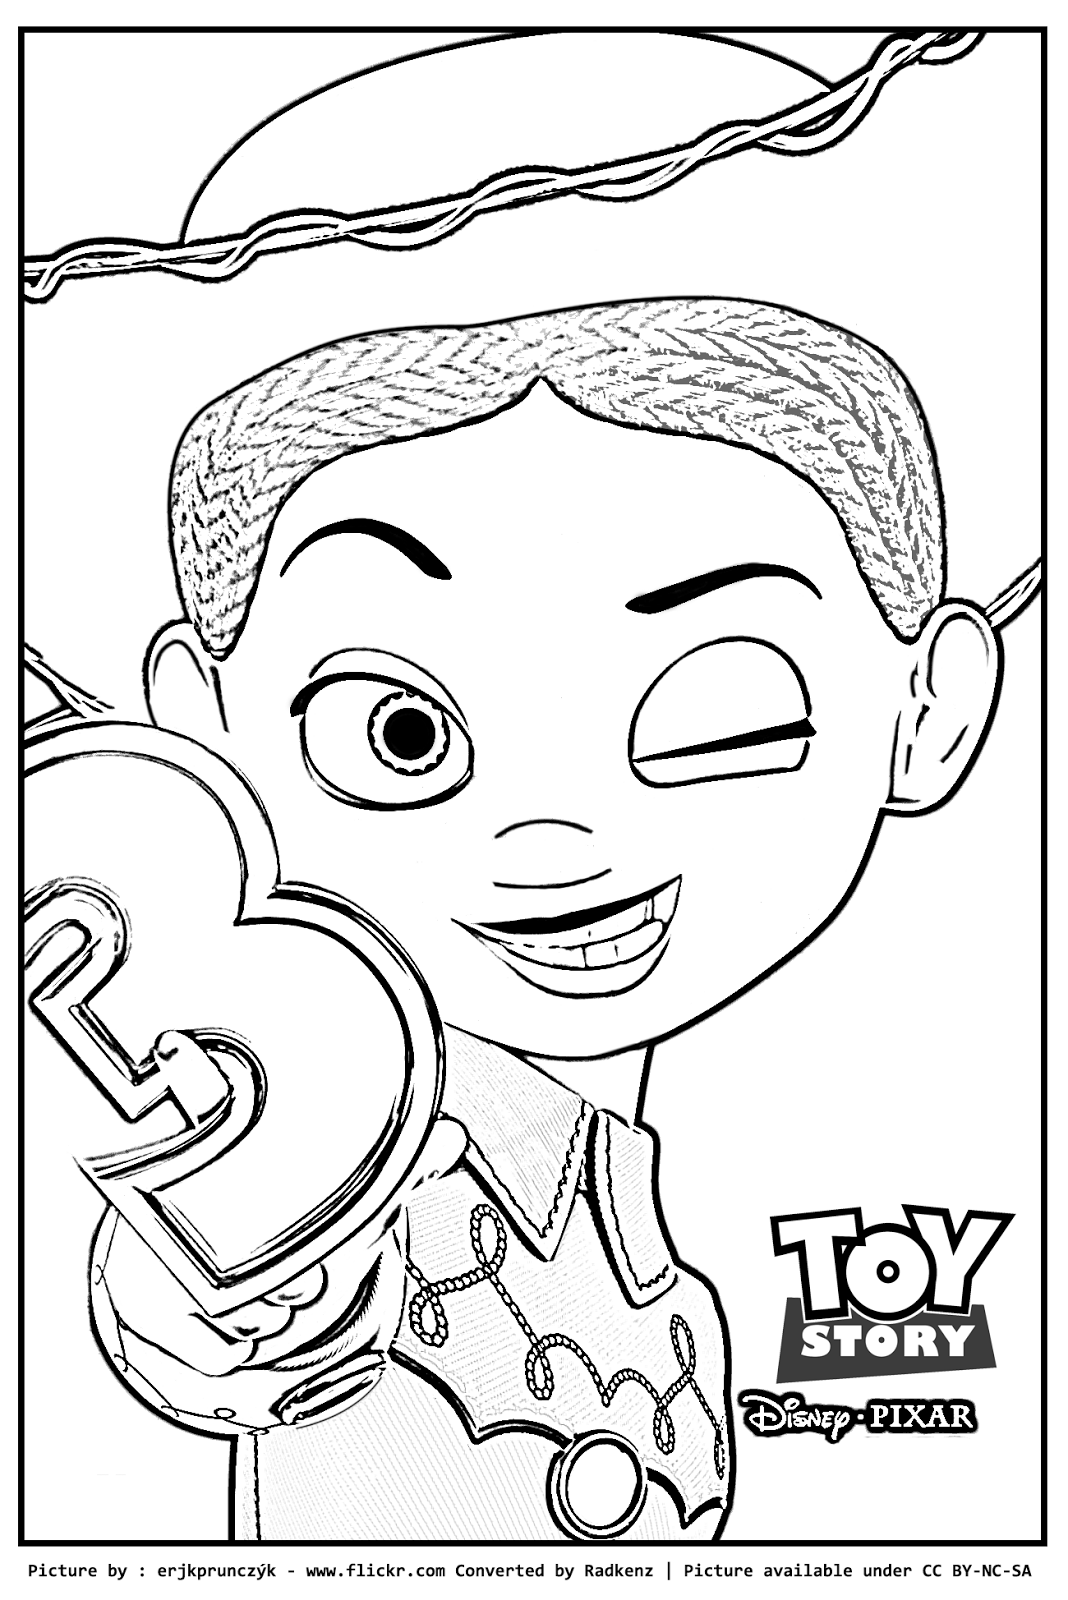 coloring sheet toy story coloring pages coloring pages for everyone toy story sheet coloring coloring toy story pages